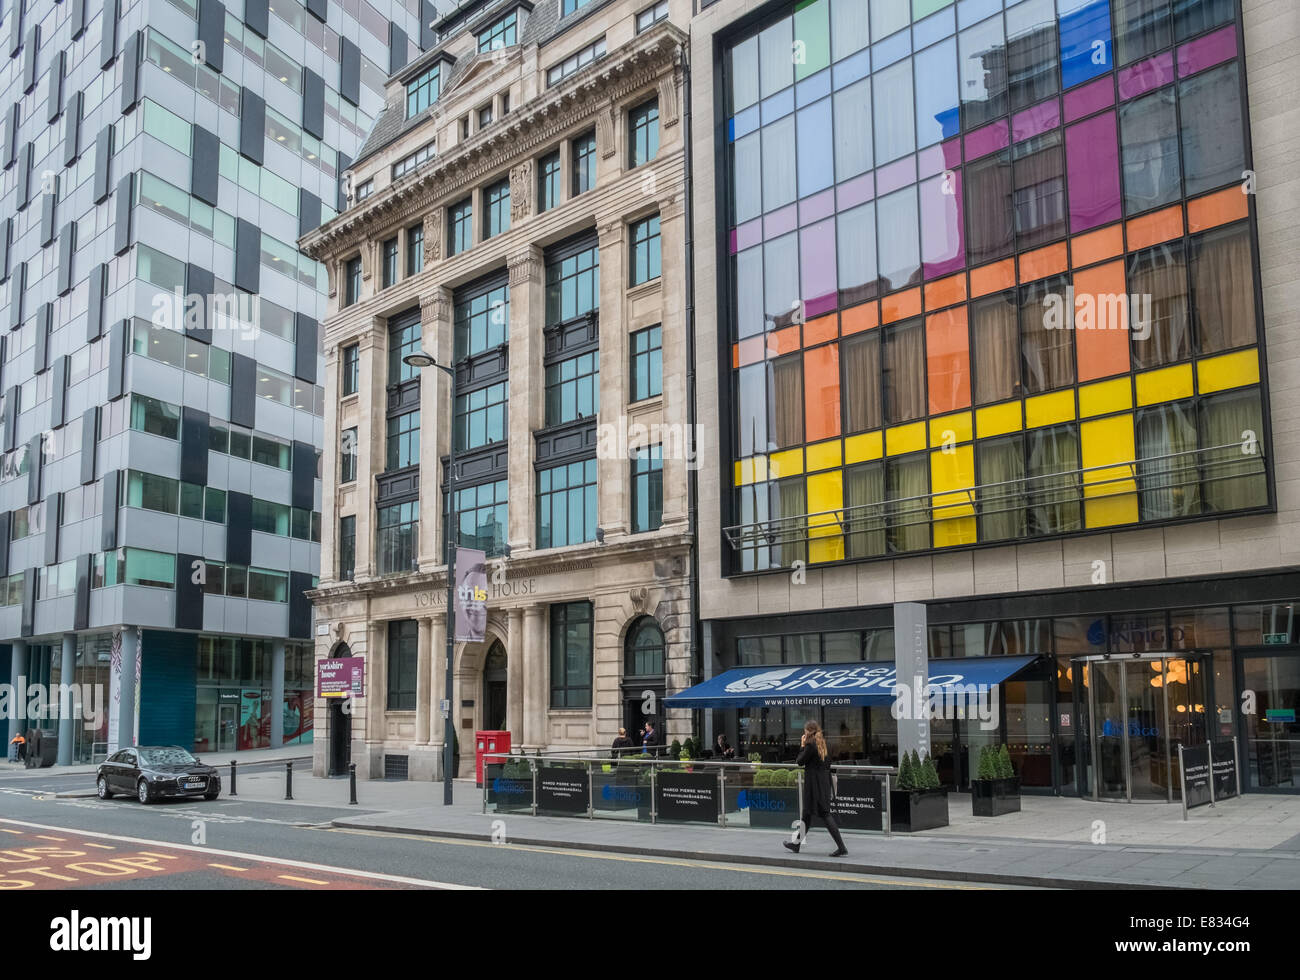 Examples of modern and traditional architecture, Chapel Street, Liverpool, Merseyside, England UK - Stock Image